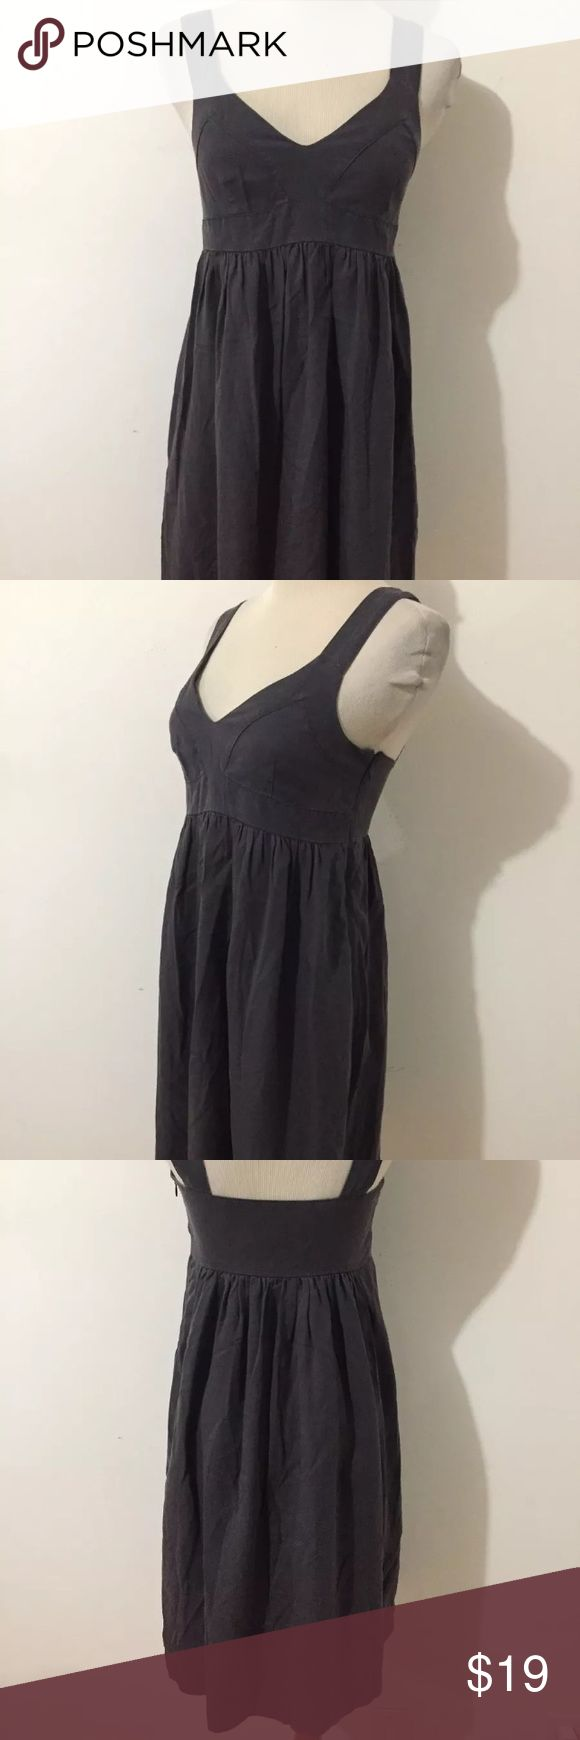 Lands' End Canvas Gray Fit & Flare Dress Sz 6 Lands' End Canvas Sleeveless Dress In Charcoal Gray. Classic style fitted under the bust with a flare skirt. Soft fabric with 100% lyocell. Lined in 100% polyester.  Only worn a couple of times. Excellent condition! Lands' End Dresses